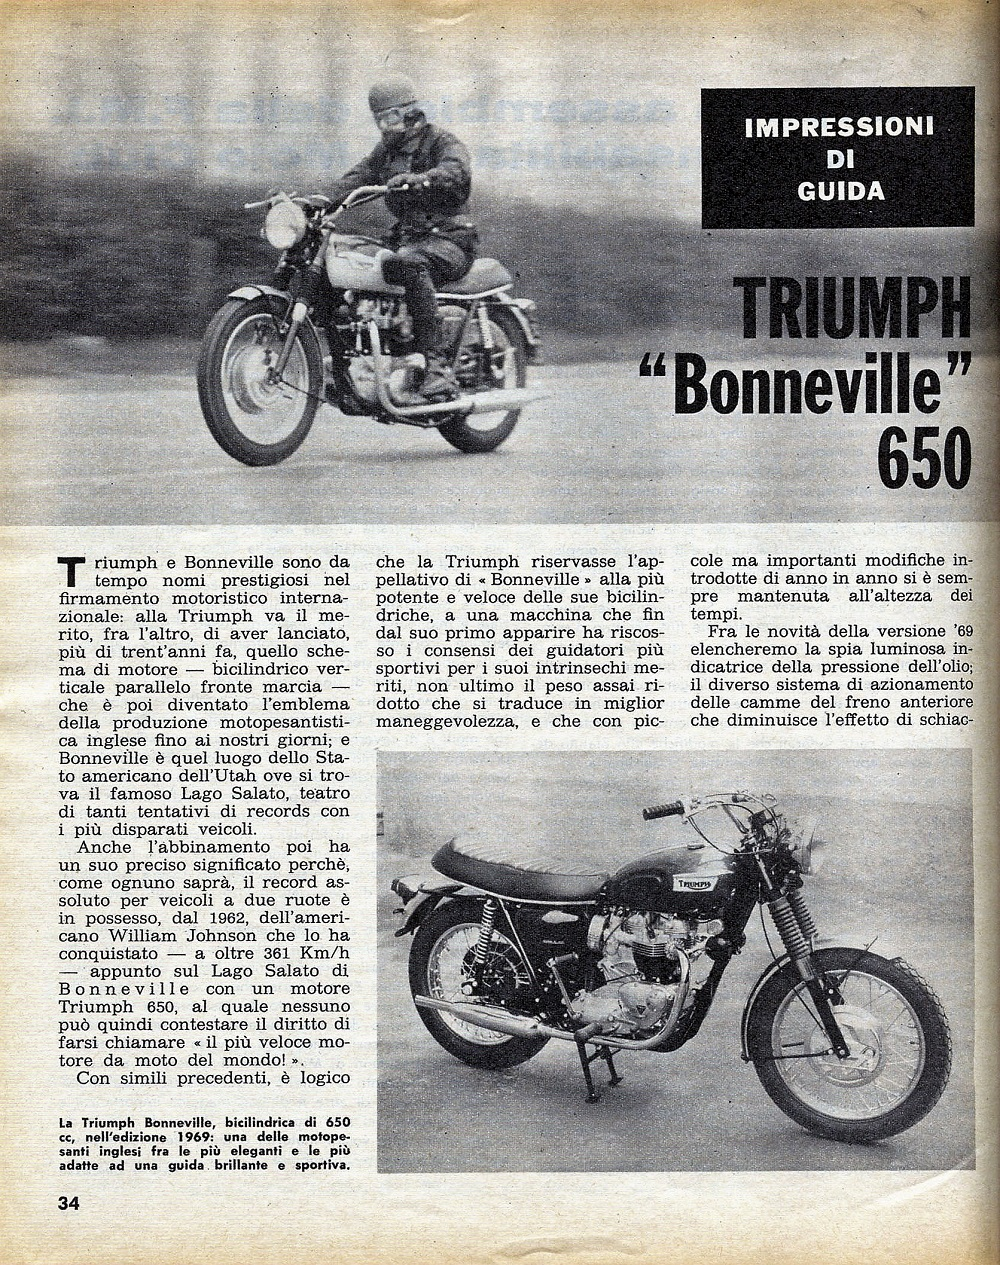 1969 Triumph Bonneville road test. 1.jpg